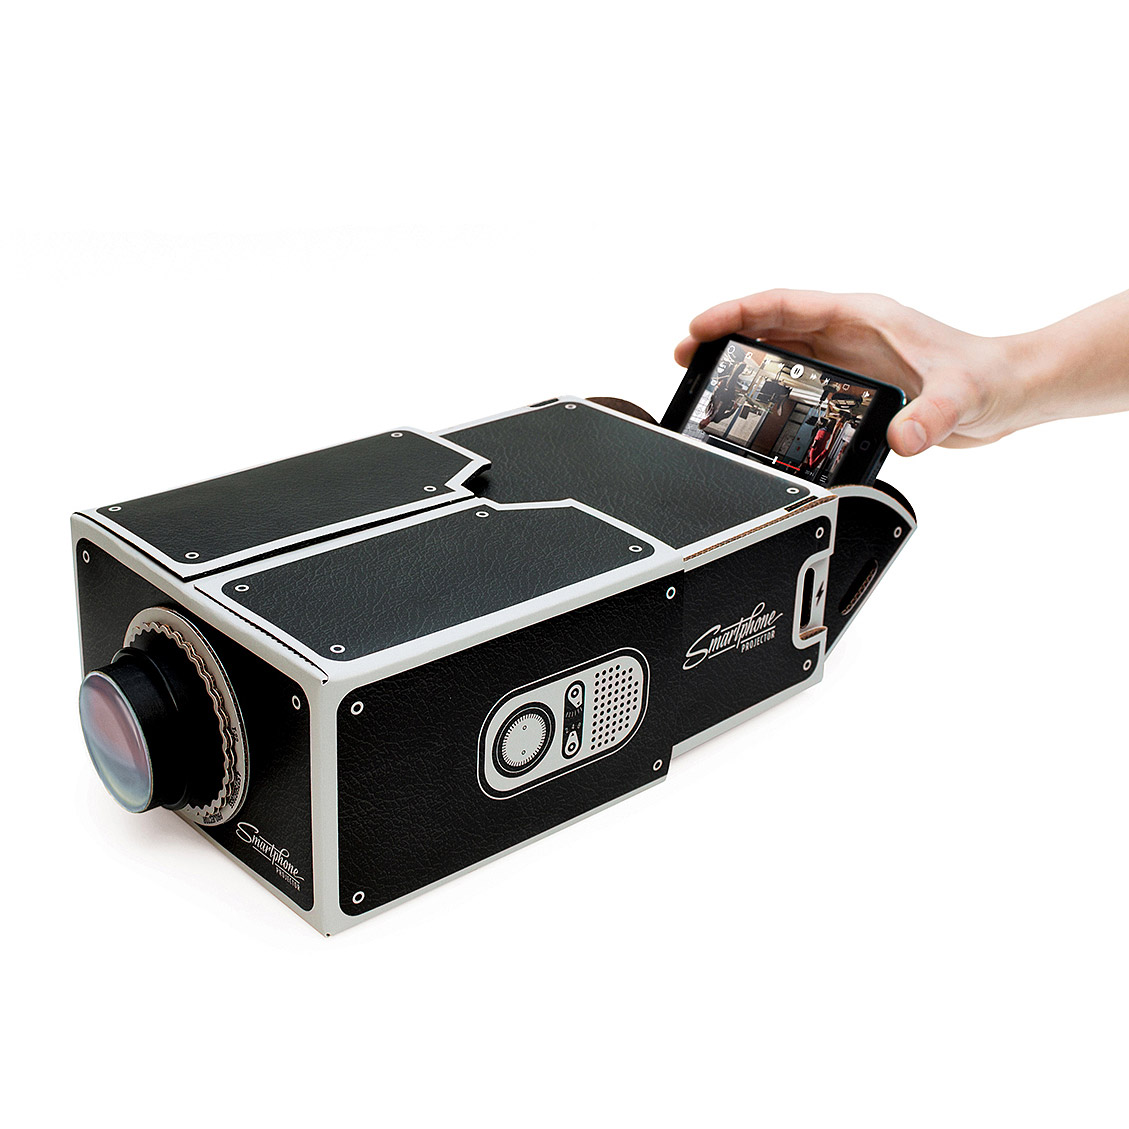 Turn Your Smartphone Into A Movie Projector